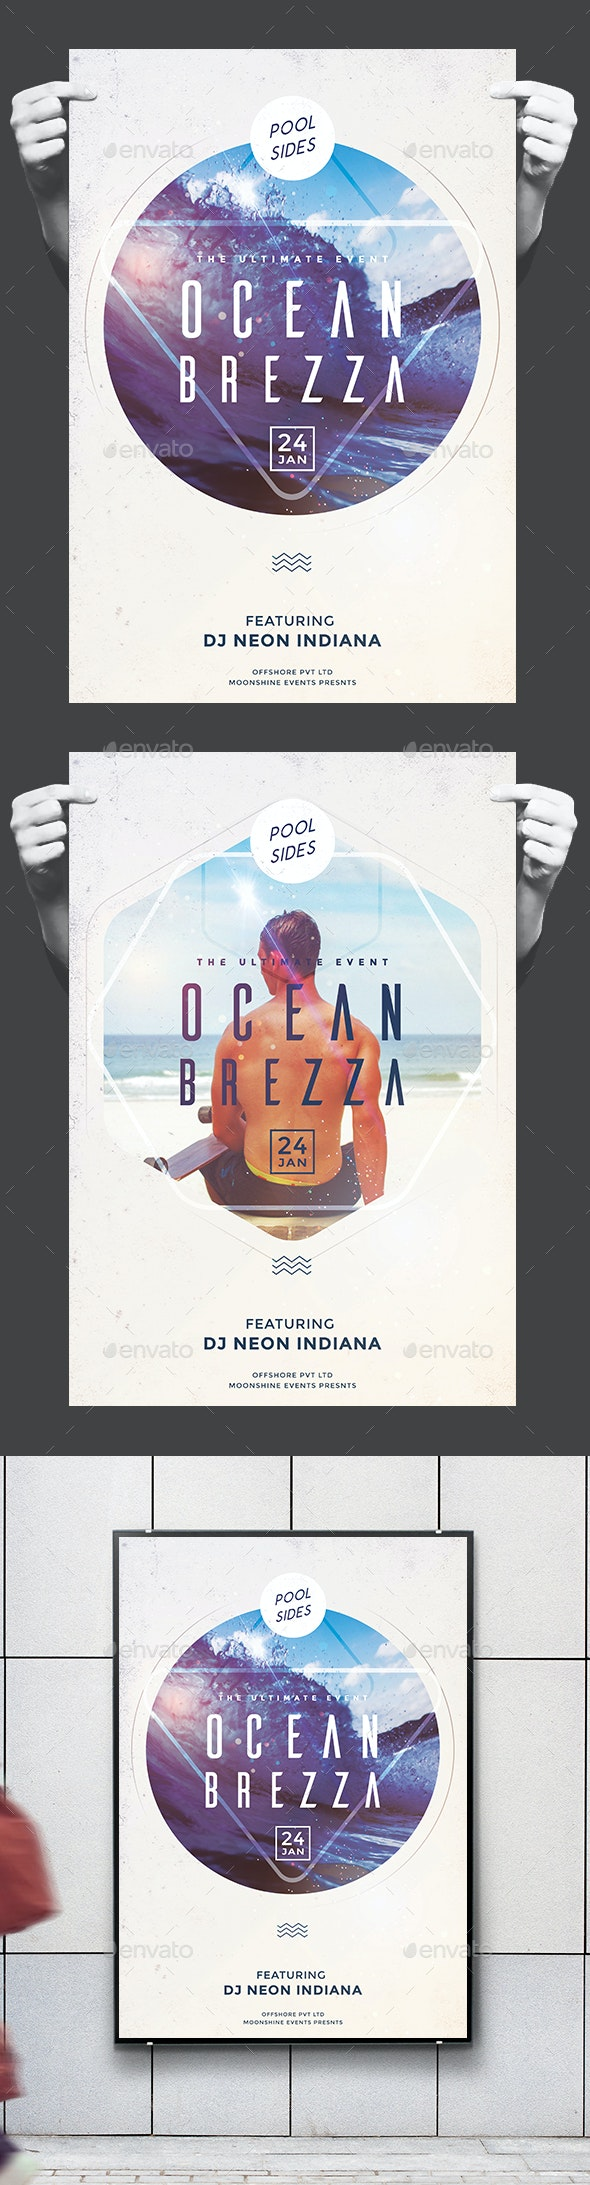 Beach Party Flyer/Poster - Clubs & Parties Events